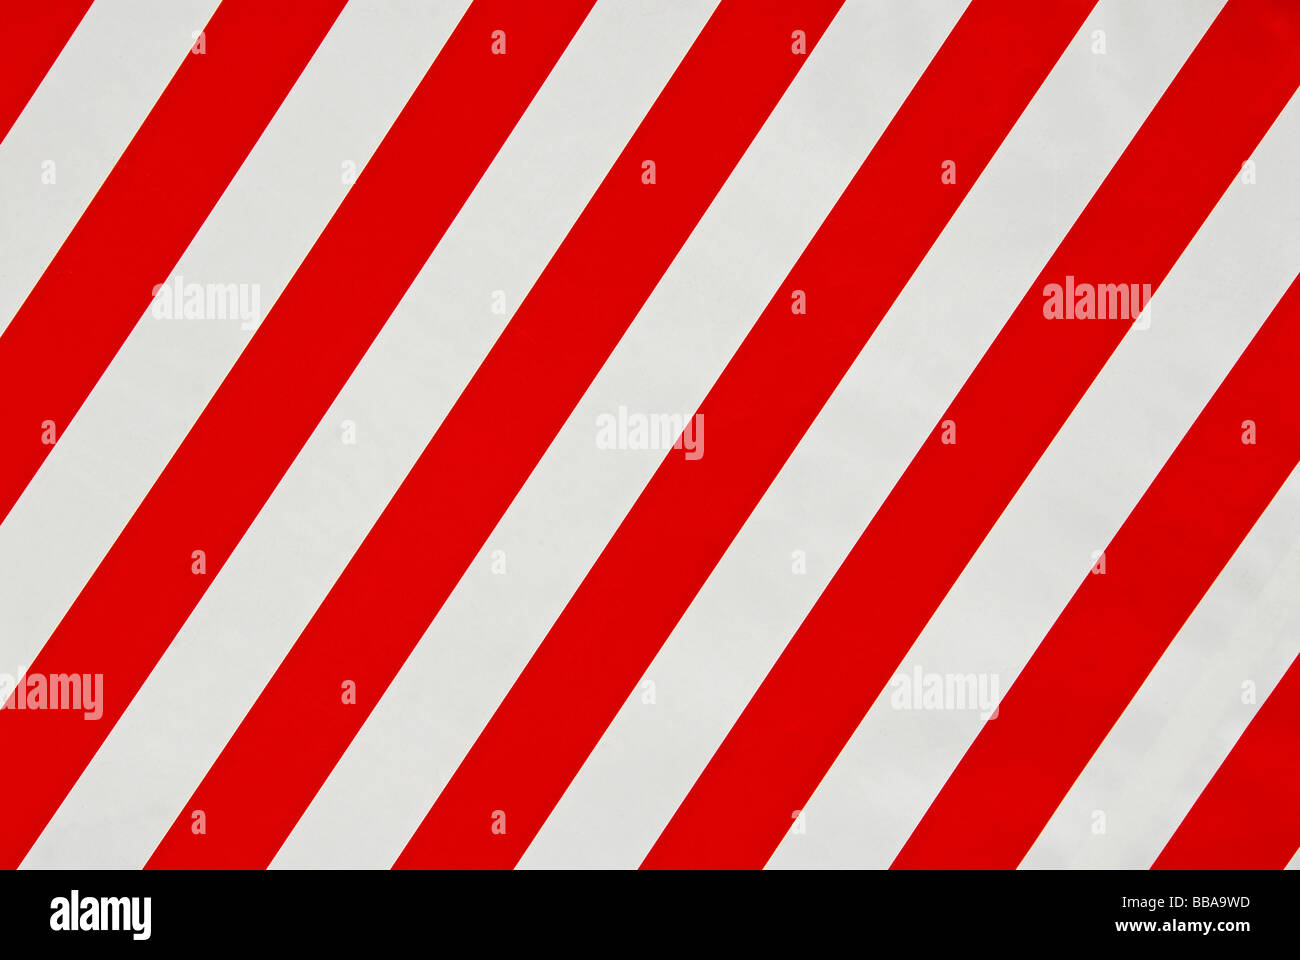 Red and white canvas background - Stock Image